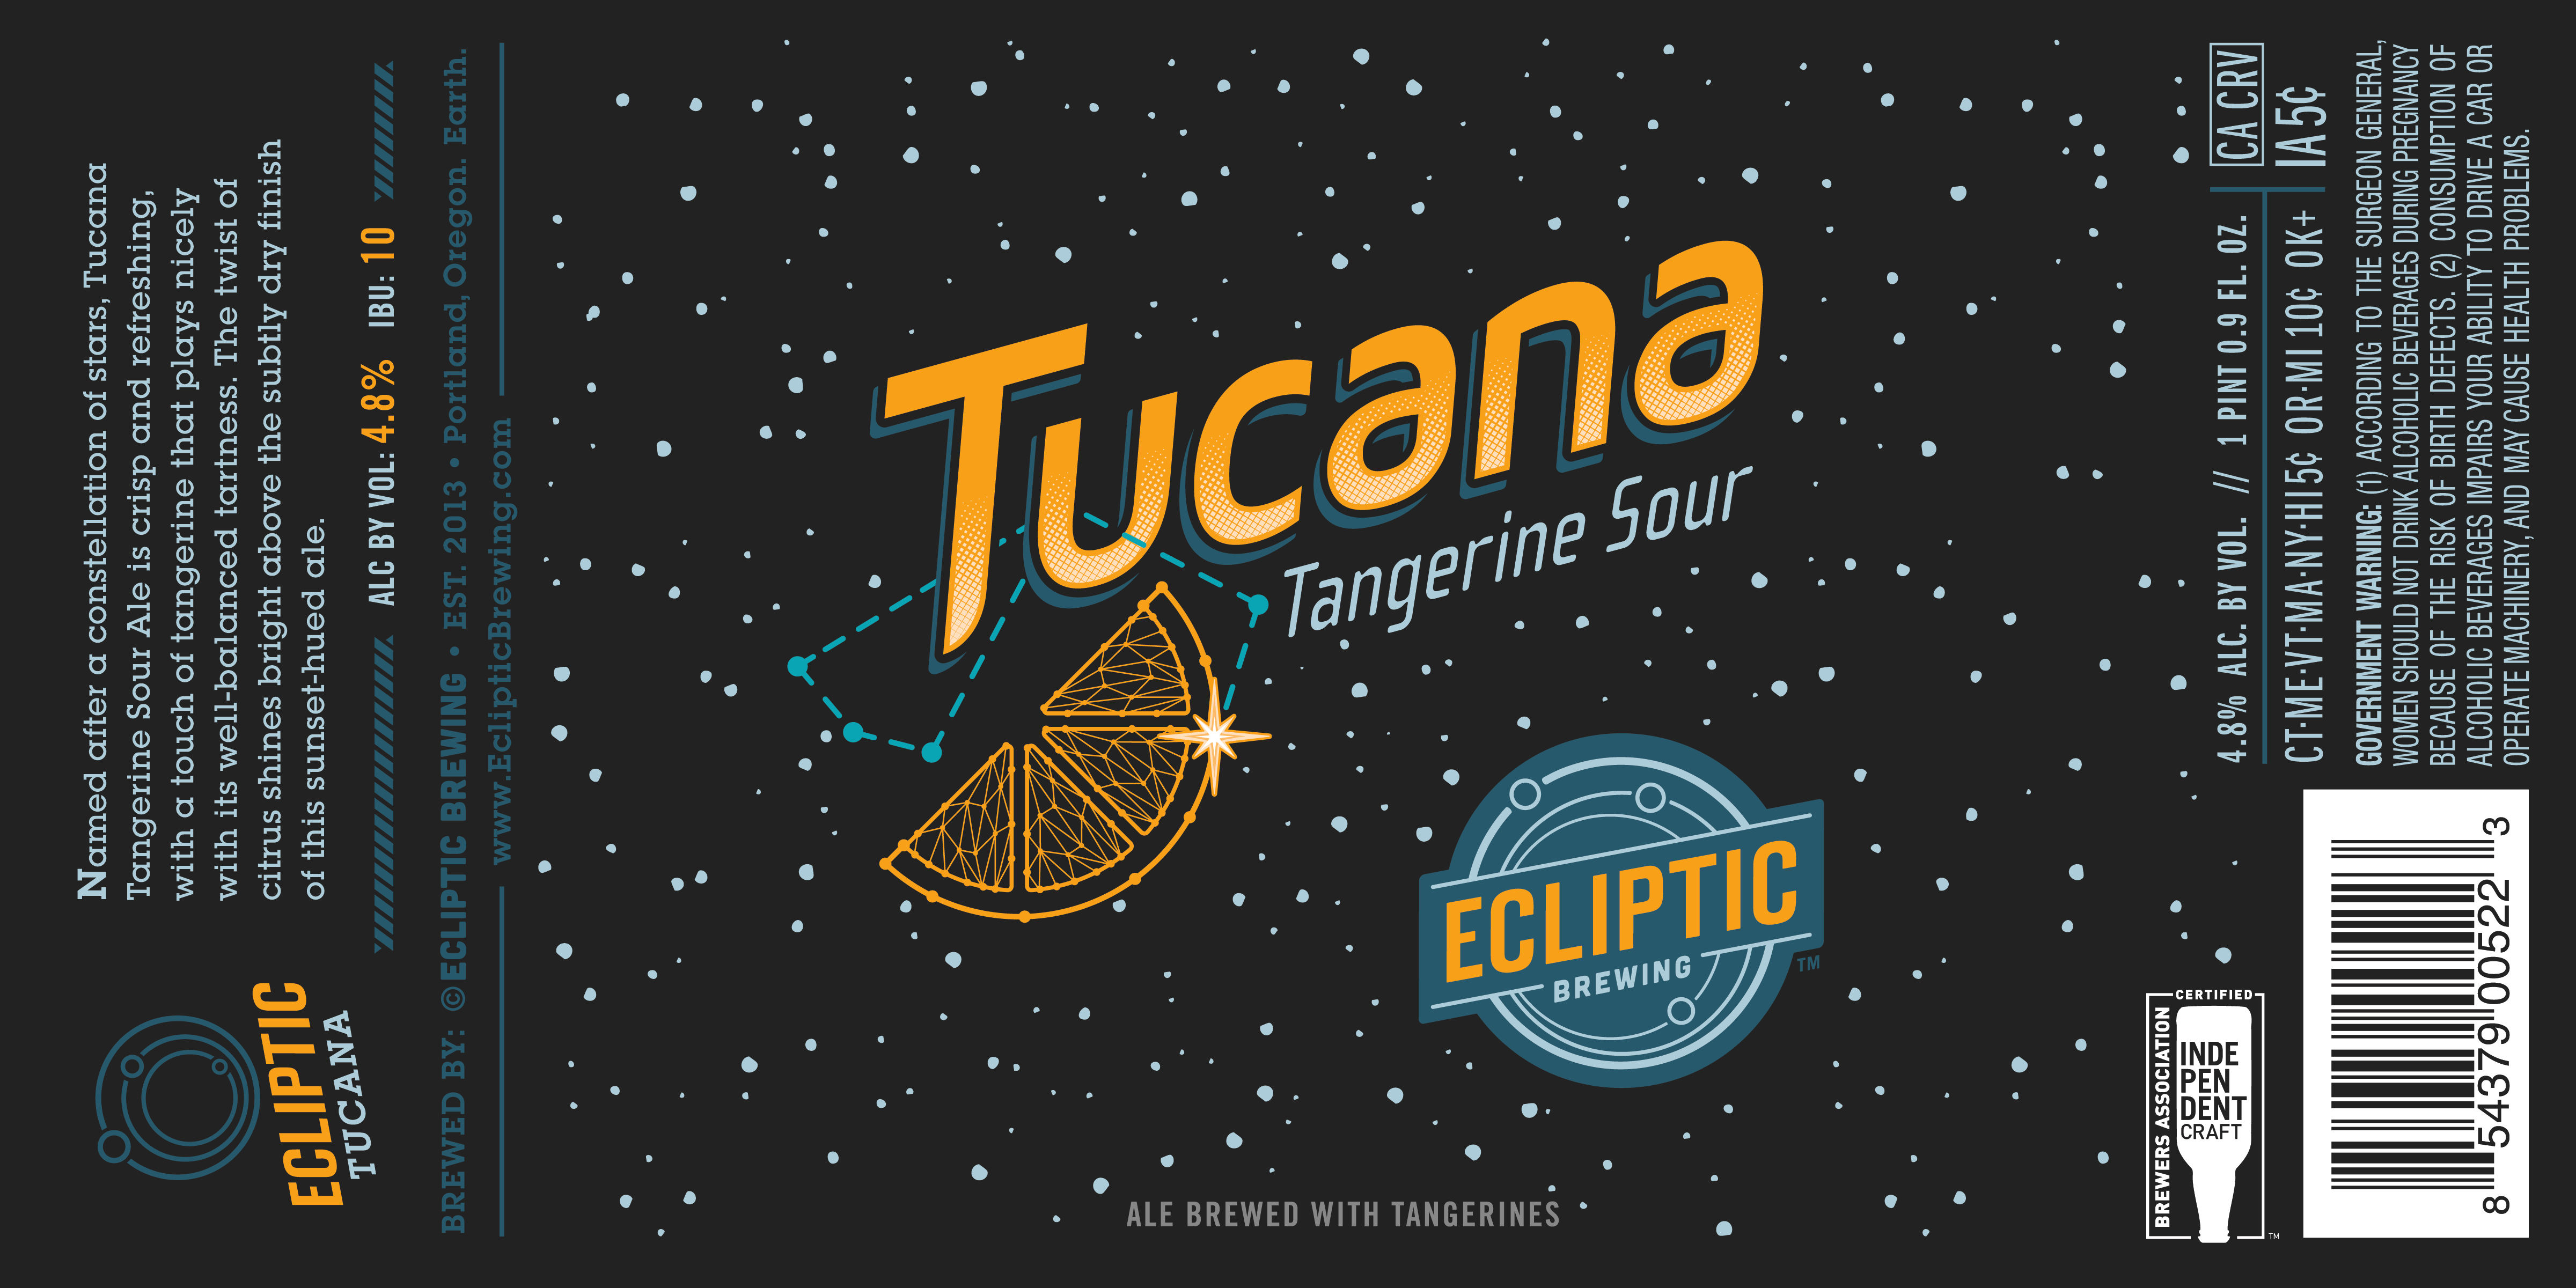 Ecliptic Brewing Tucana Tangerine Sour Ale Label